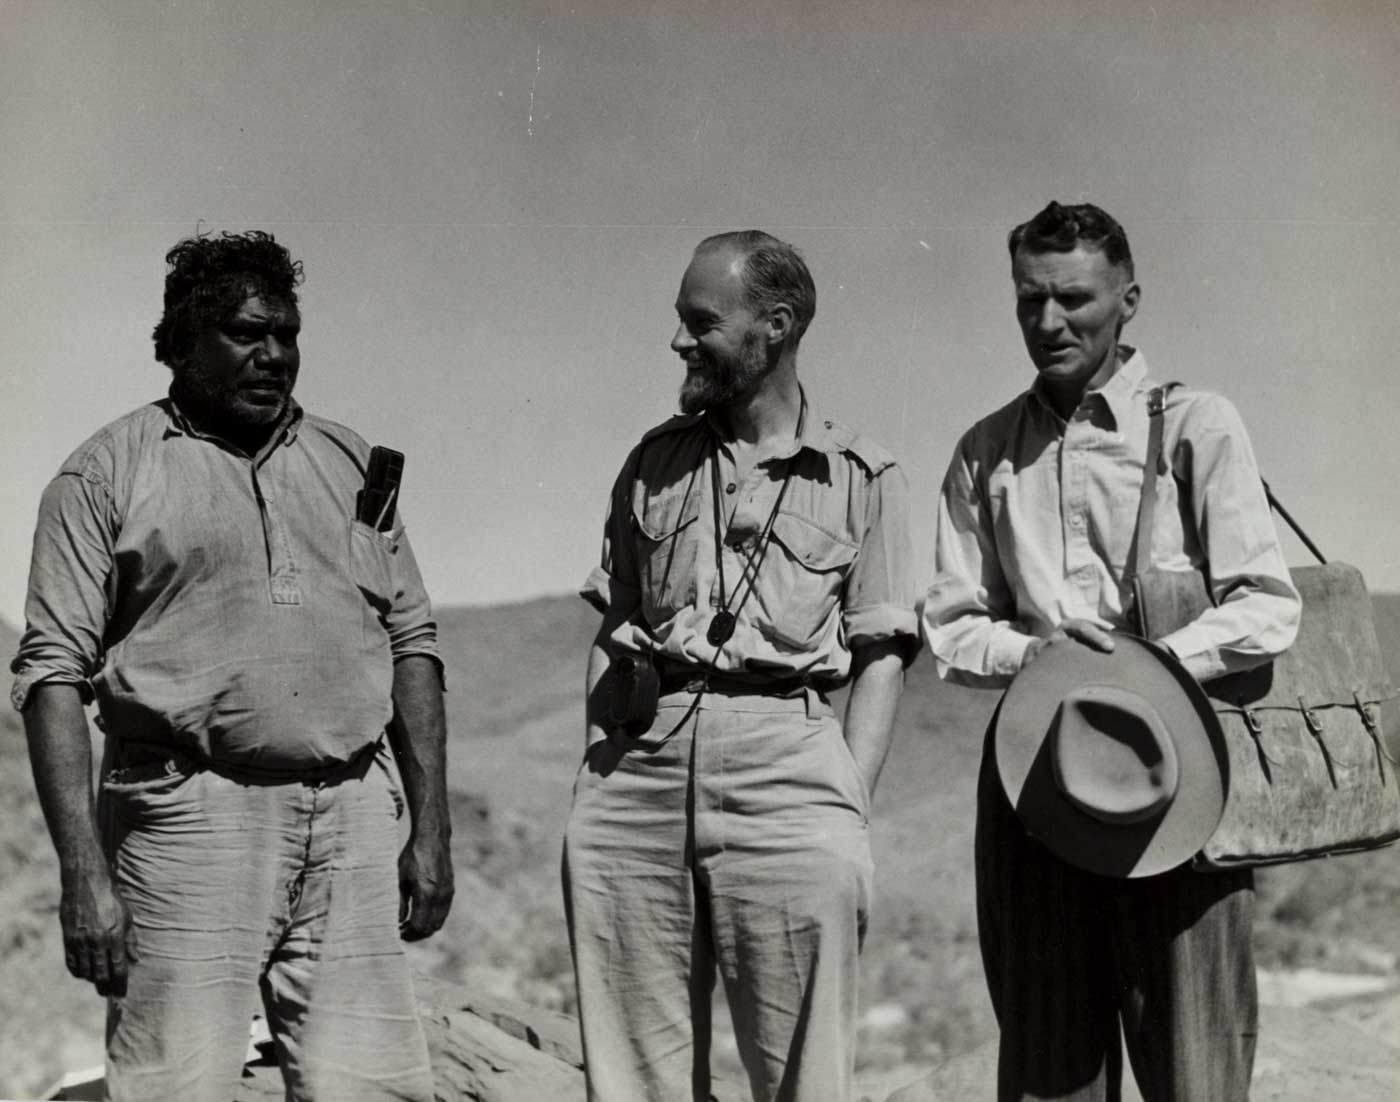 Black and white photo of three men standing in an arid landscape.